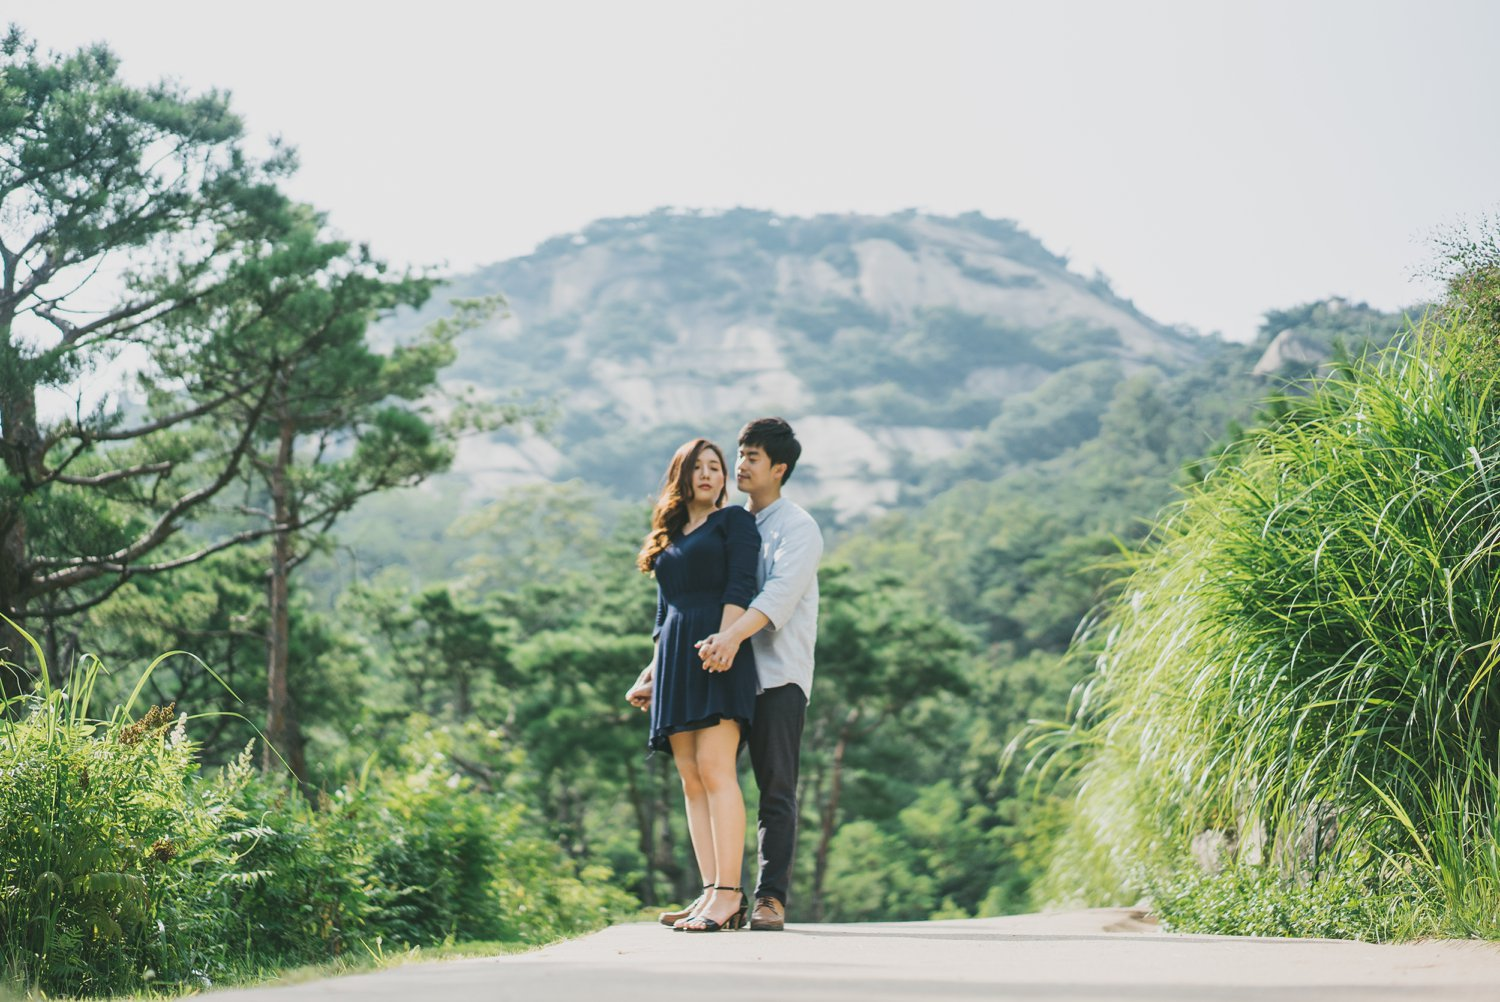 74NYC-NJ-ENGAGEMENT-PHOTOGRAPHY-BY-INTOTHESTORY-MOO-JAE.JPG